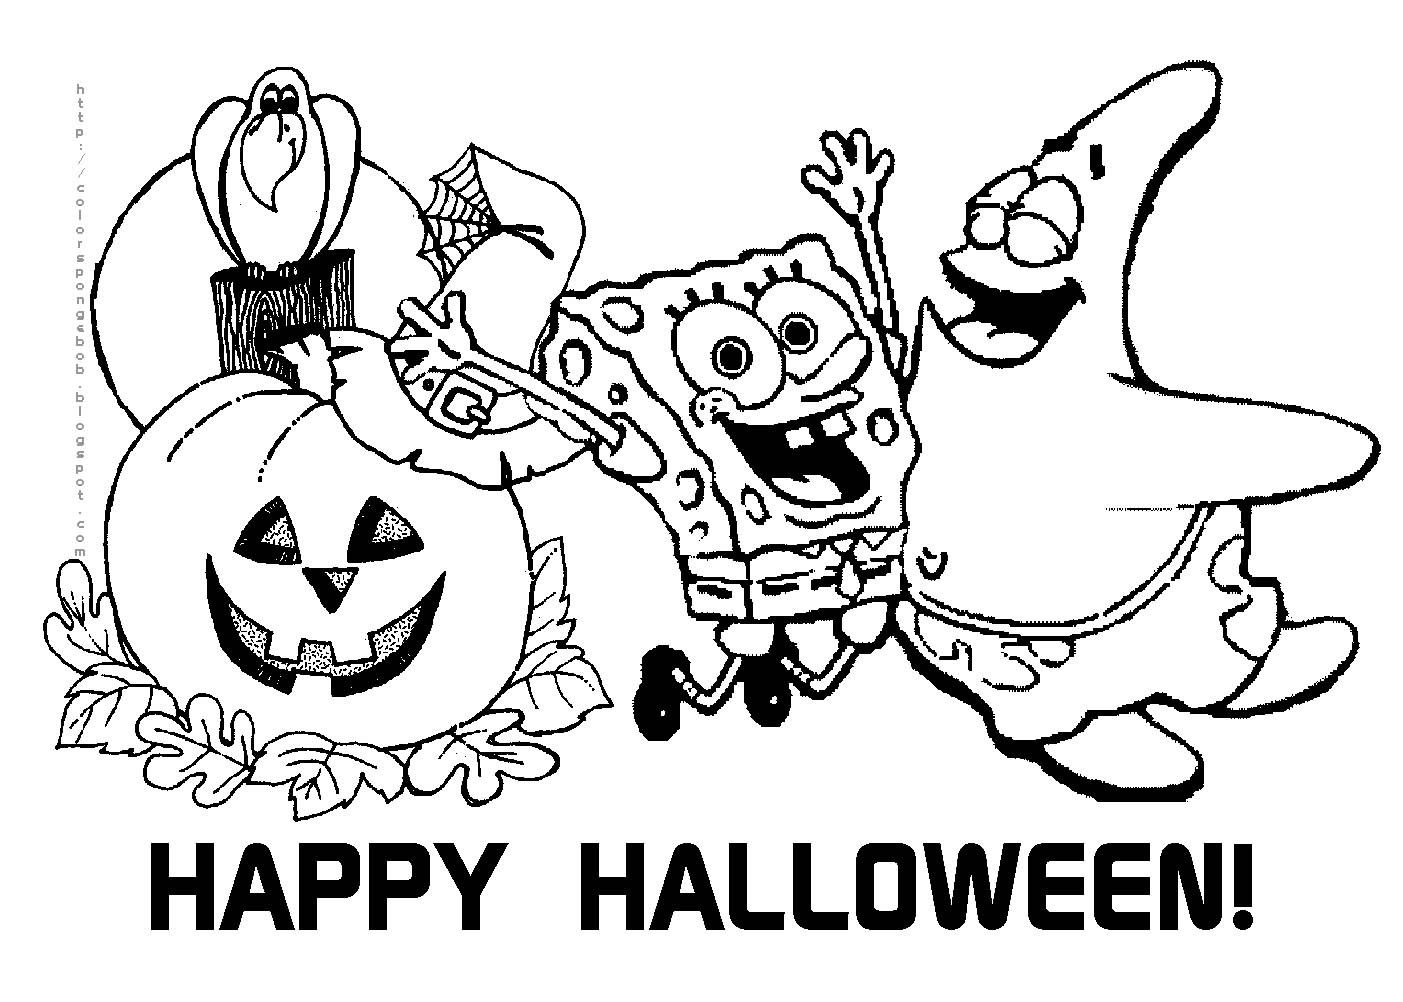 Halloween Coloring Pages Printable Free Disney Halloween Color Pages  Coloring Pages & Pictures  Imagixs